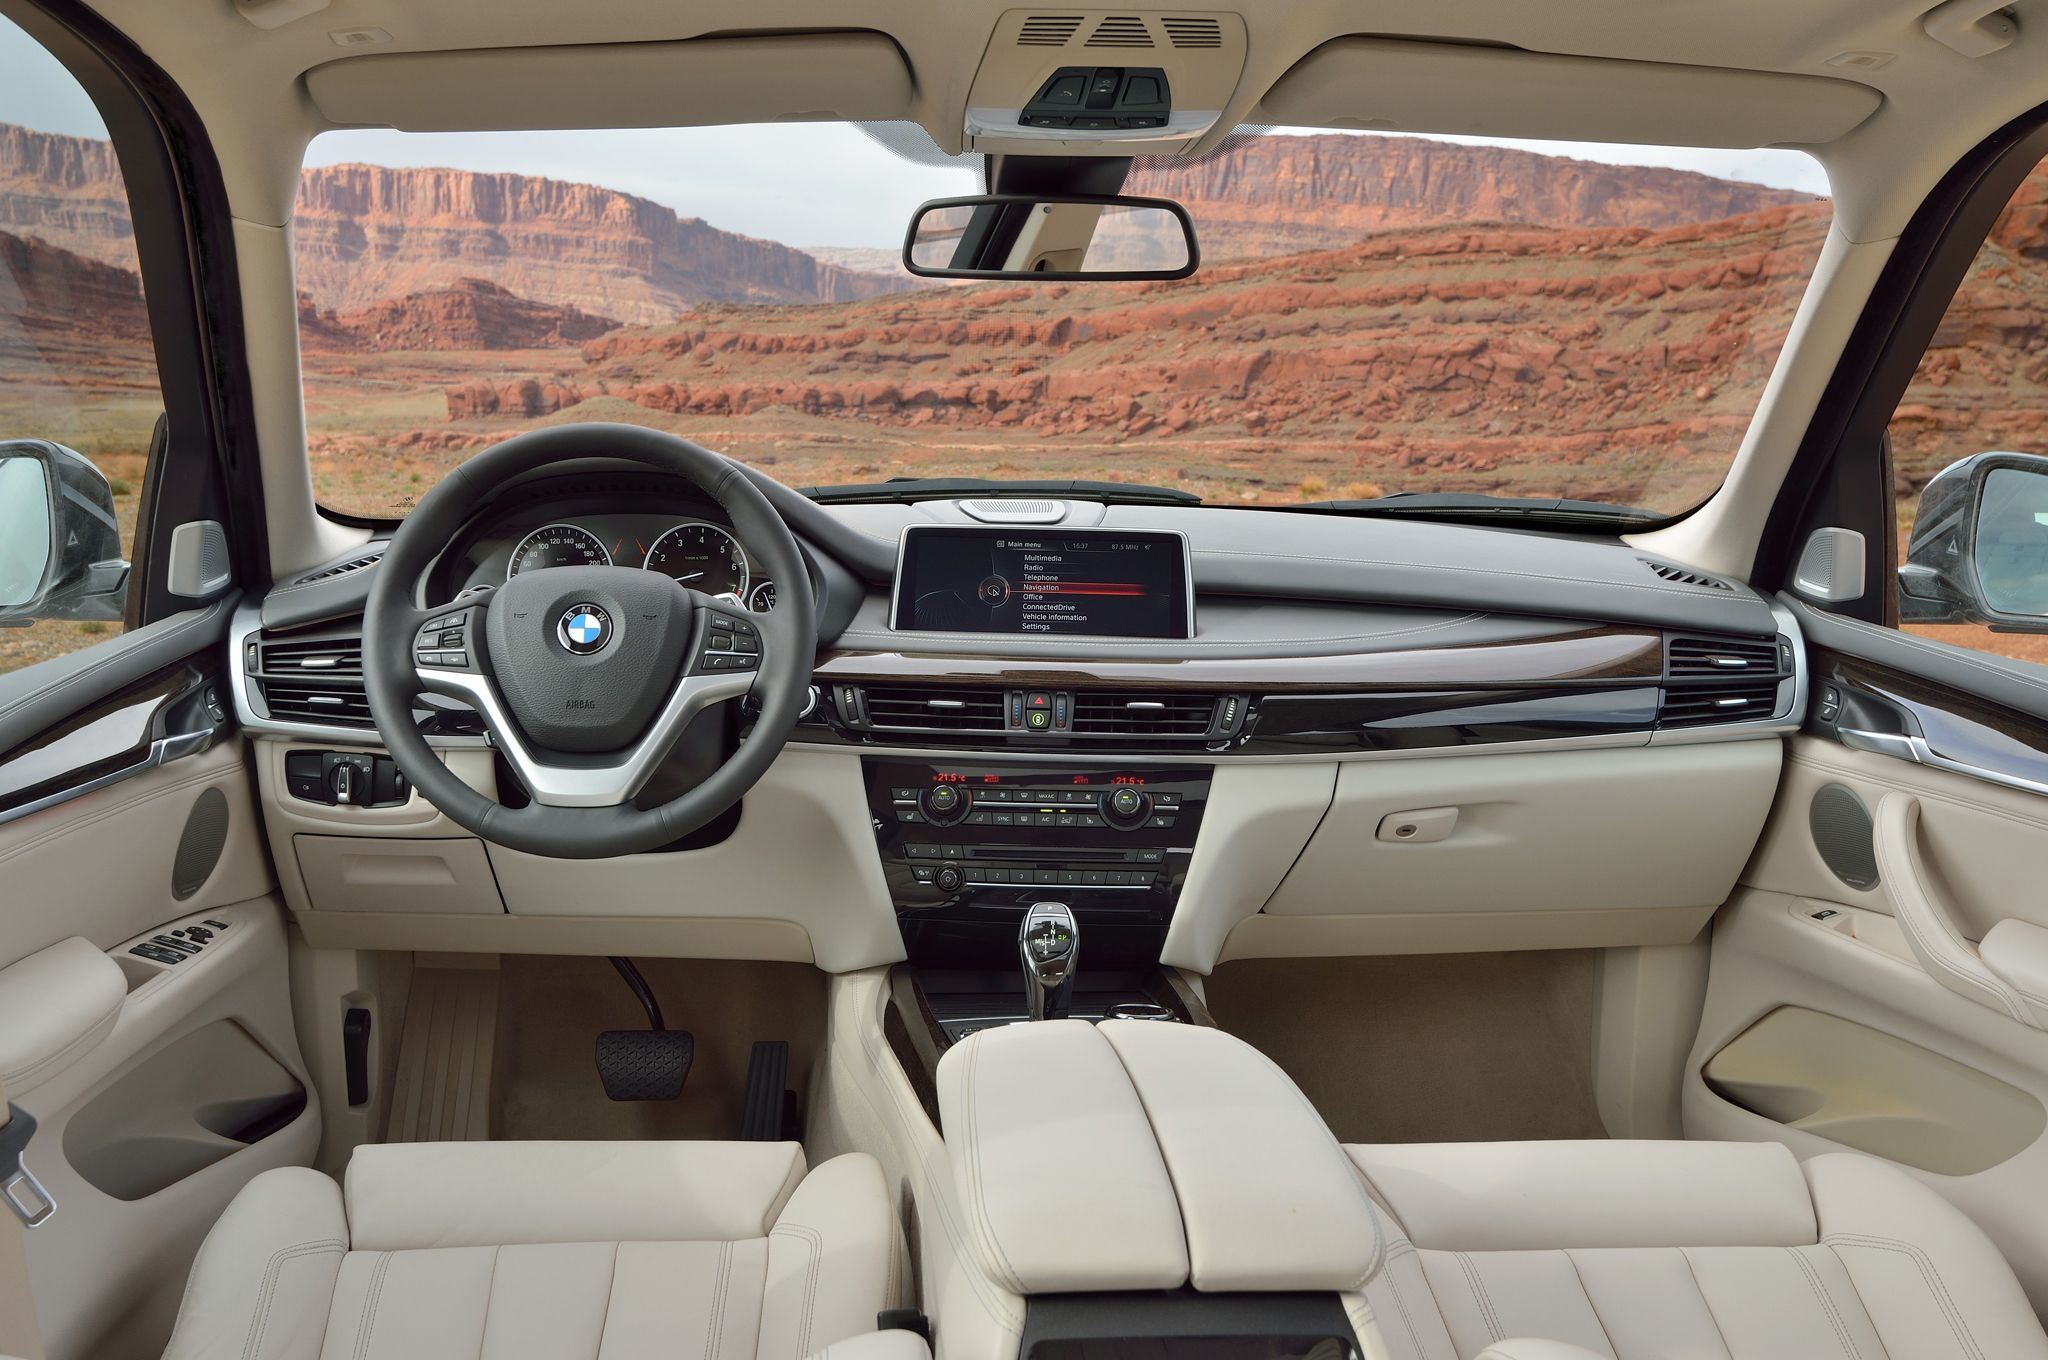 BMW X Interior Cream Leather Mode Of Transortation Pinterest - 2014 bmw x5 redesign